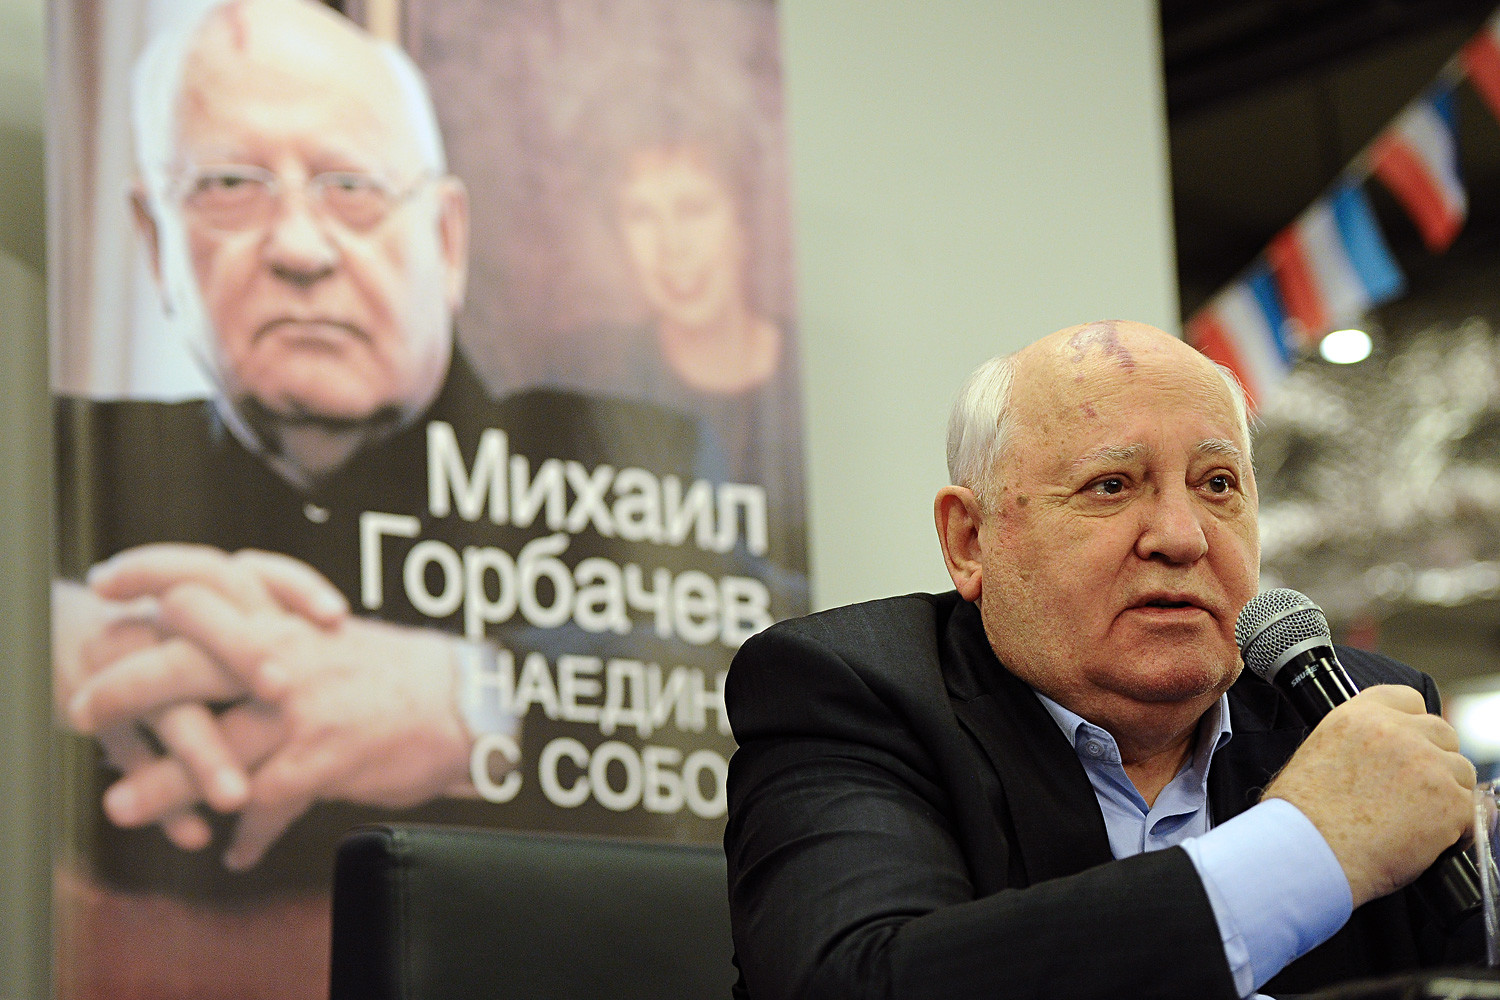 Mikhail Gorbachev during the presentation of his new book